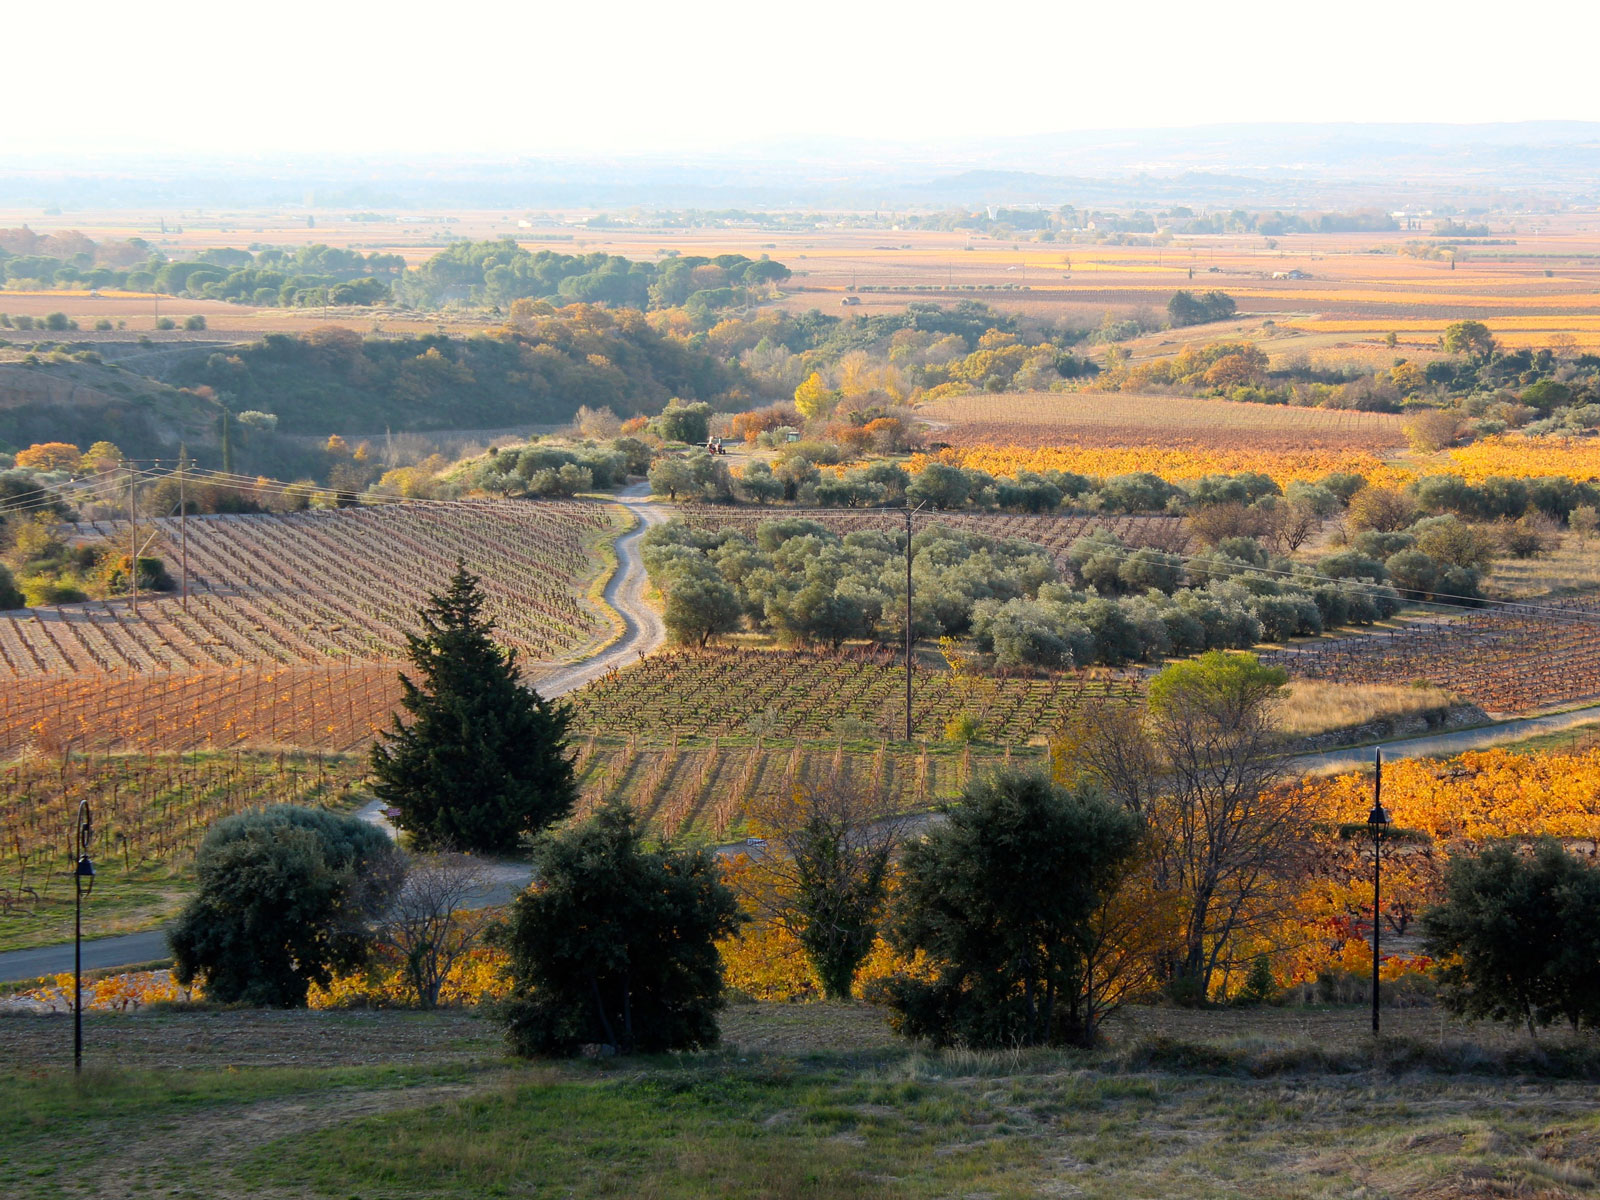 Vineyards of Domaine de la Reserve d'O